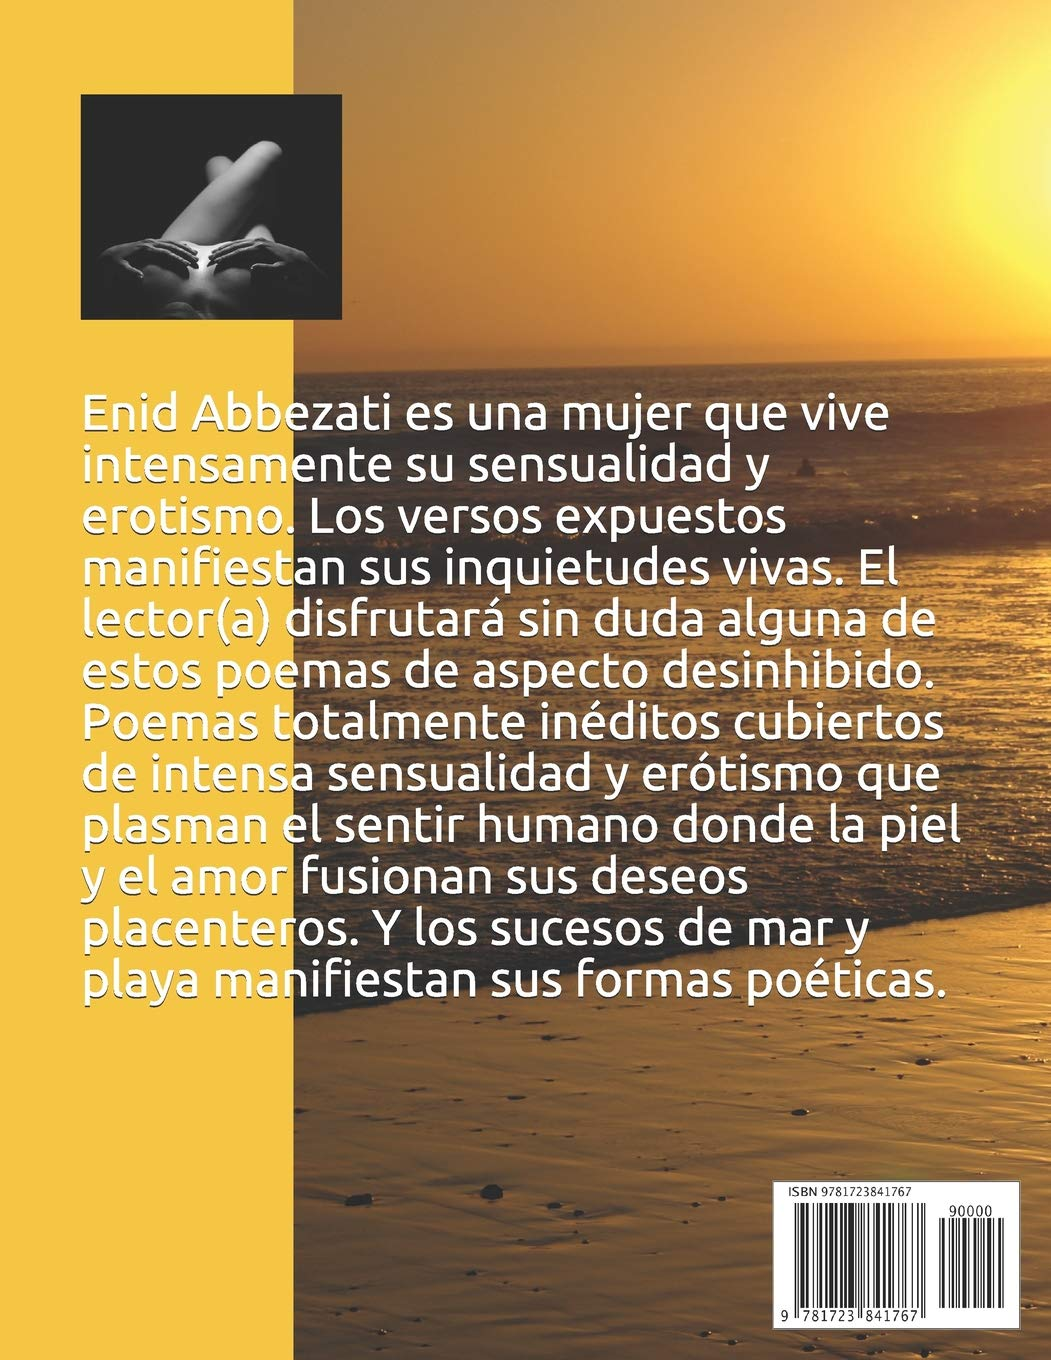 Amazon.com: Prohibido mar: Odas (Spanish Edition) (9781723841767): Venus Maritza Hernández: Books